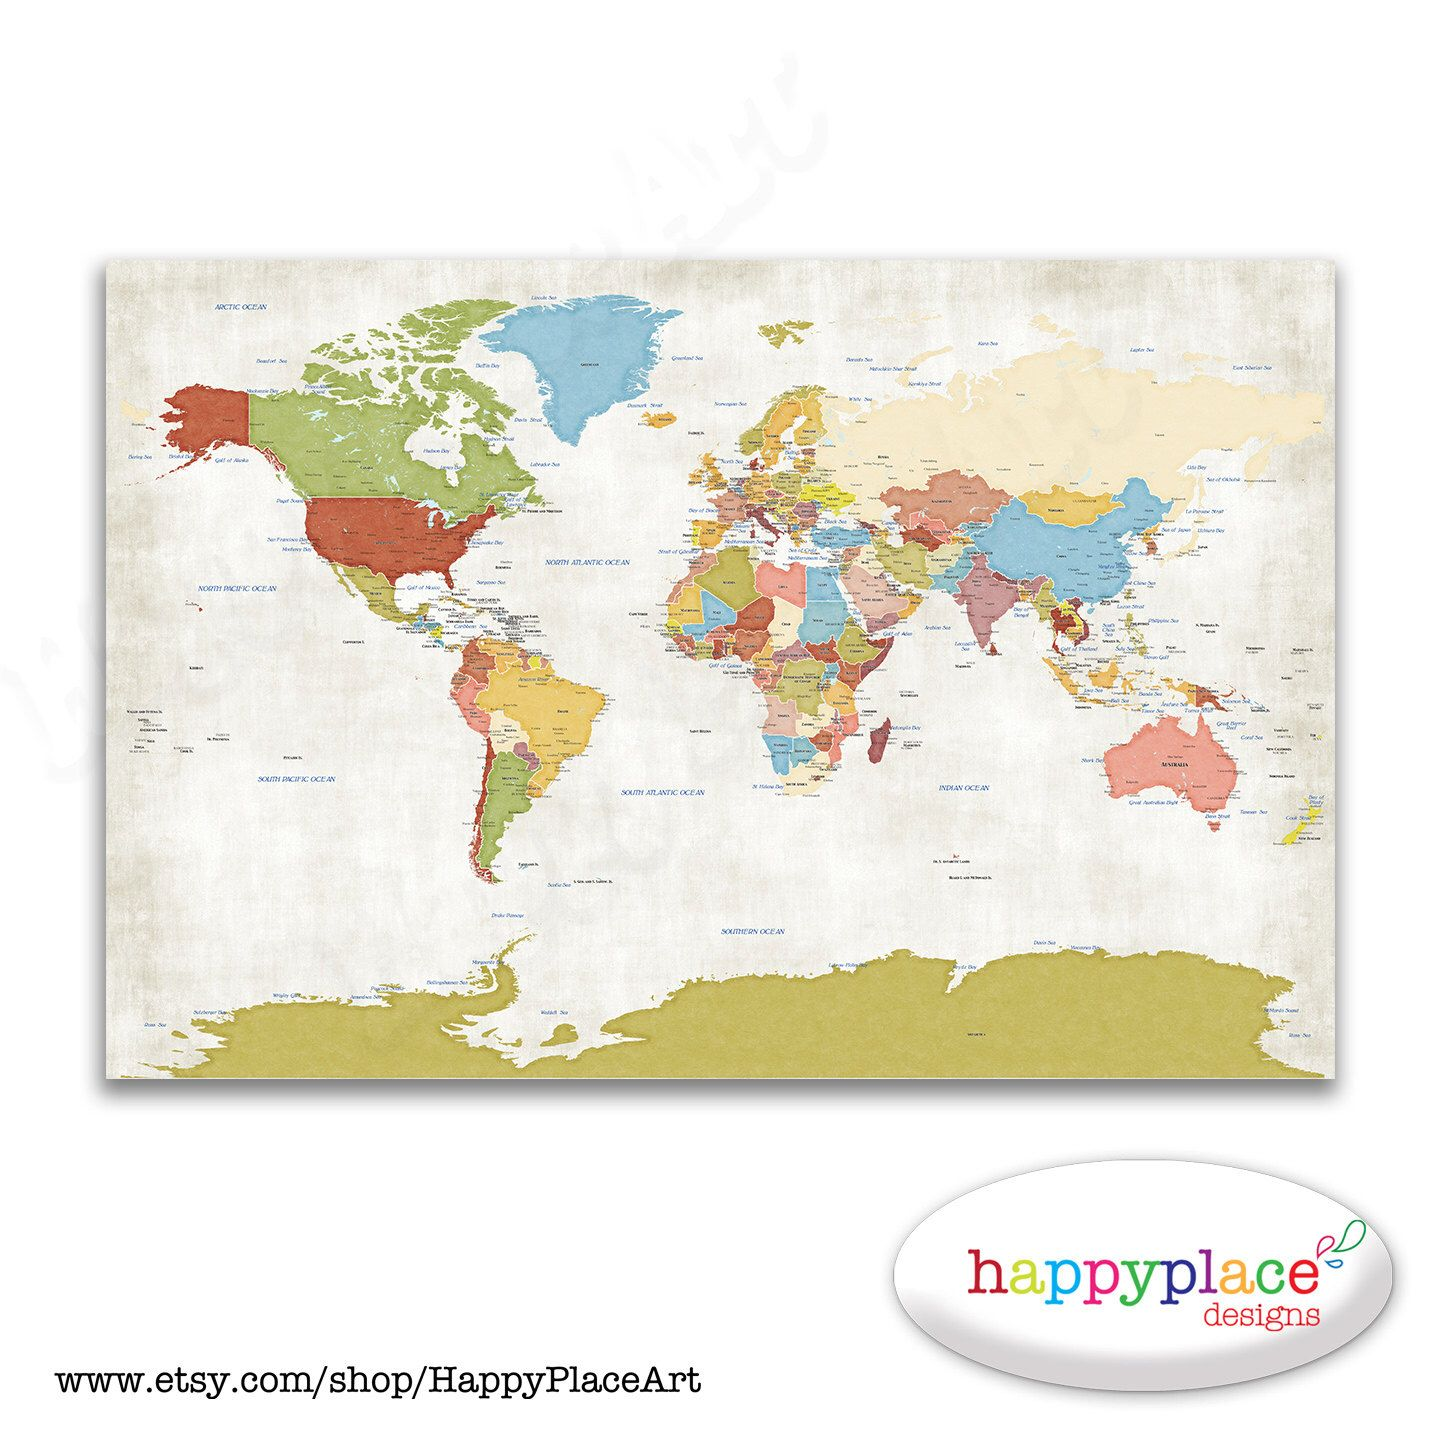 Large political map detailed map vintage world map with labels large political map detailed map vintage world map with labels country borders capital cities labels push pin map vacation travel map gumiabroncs Images